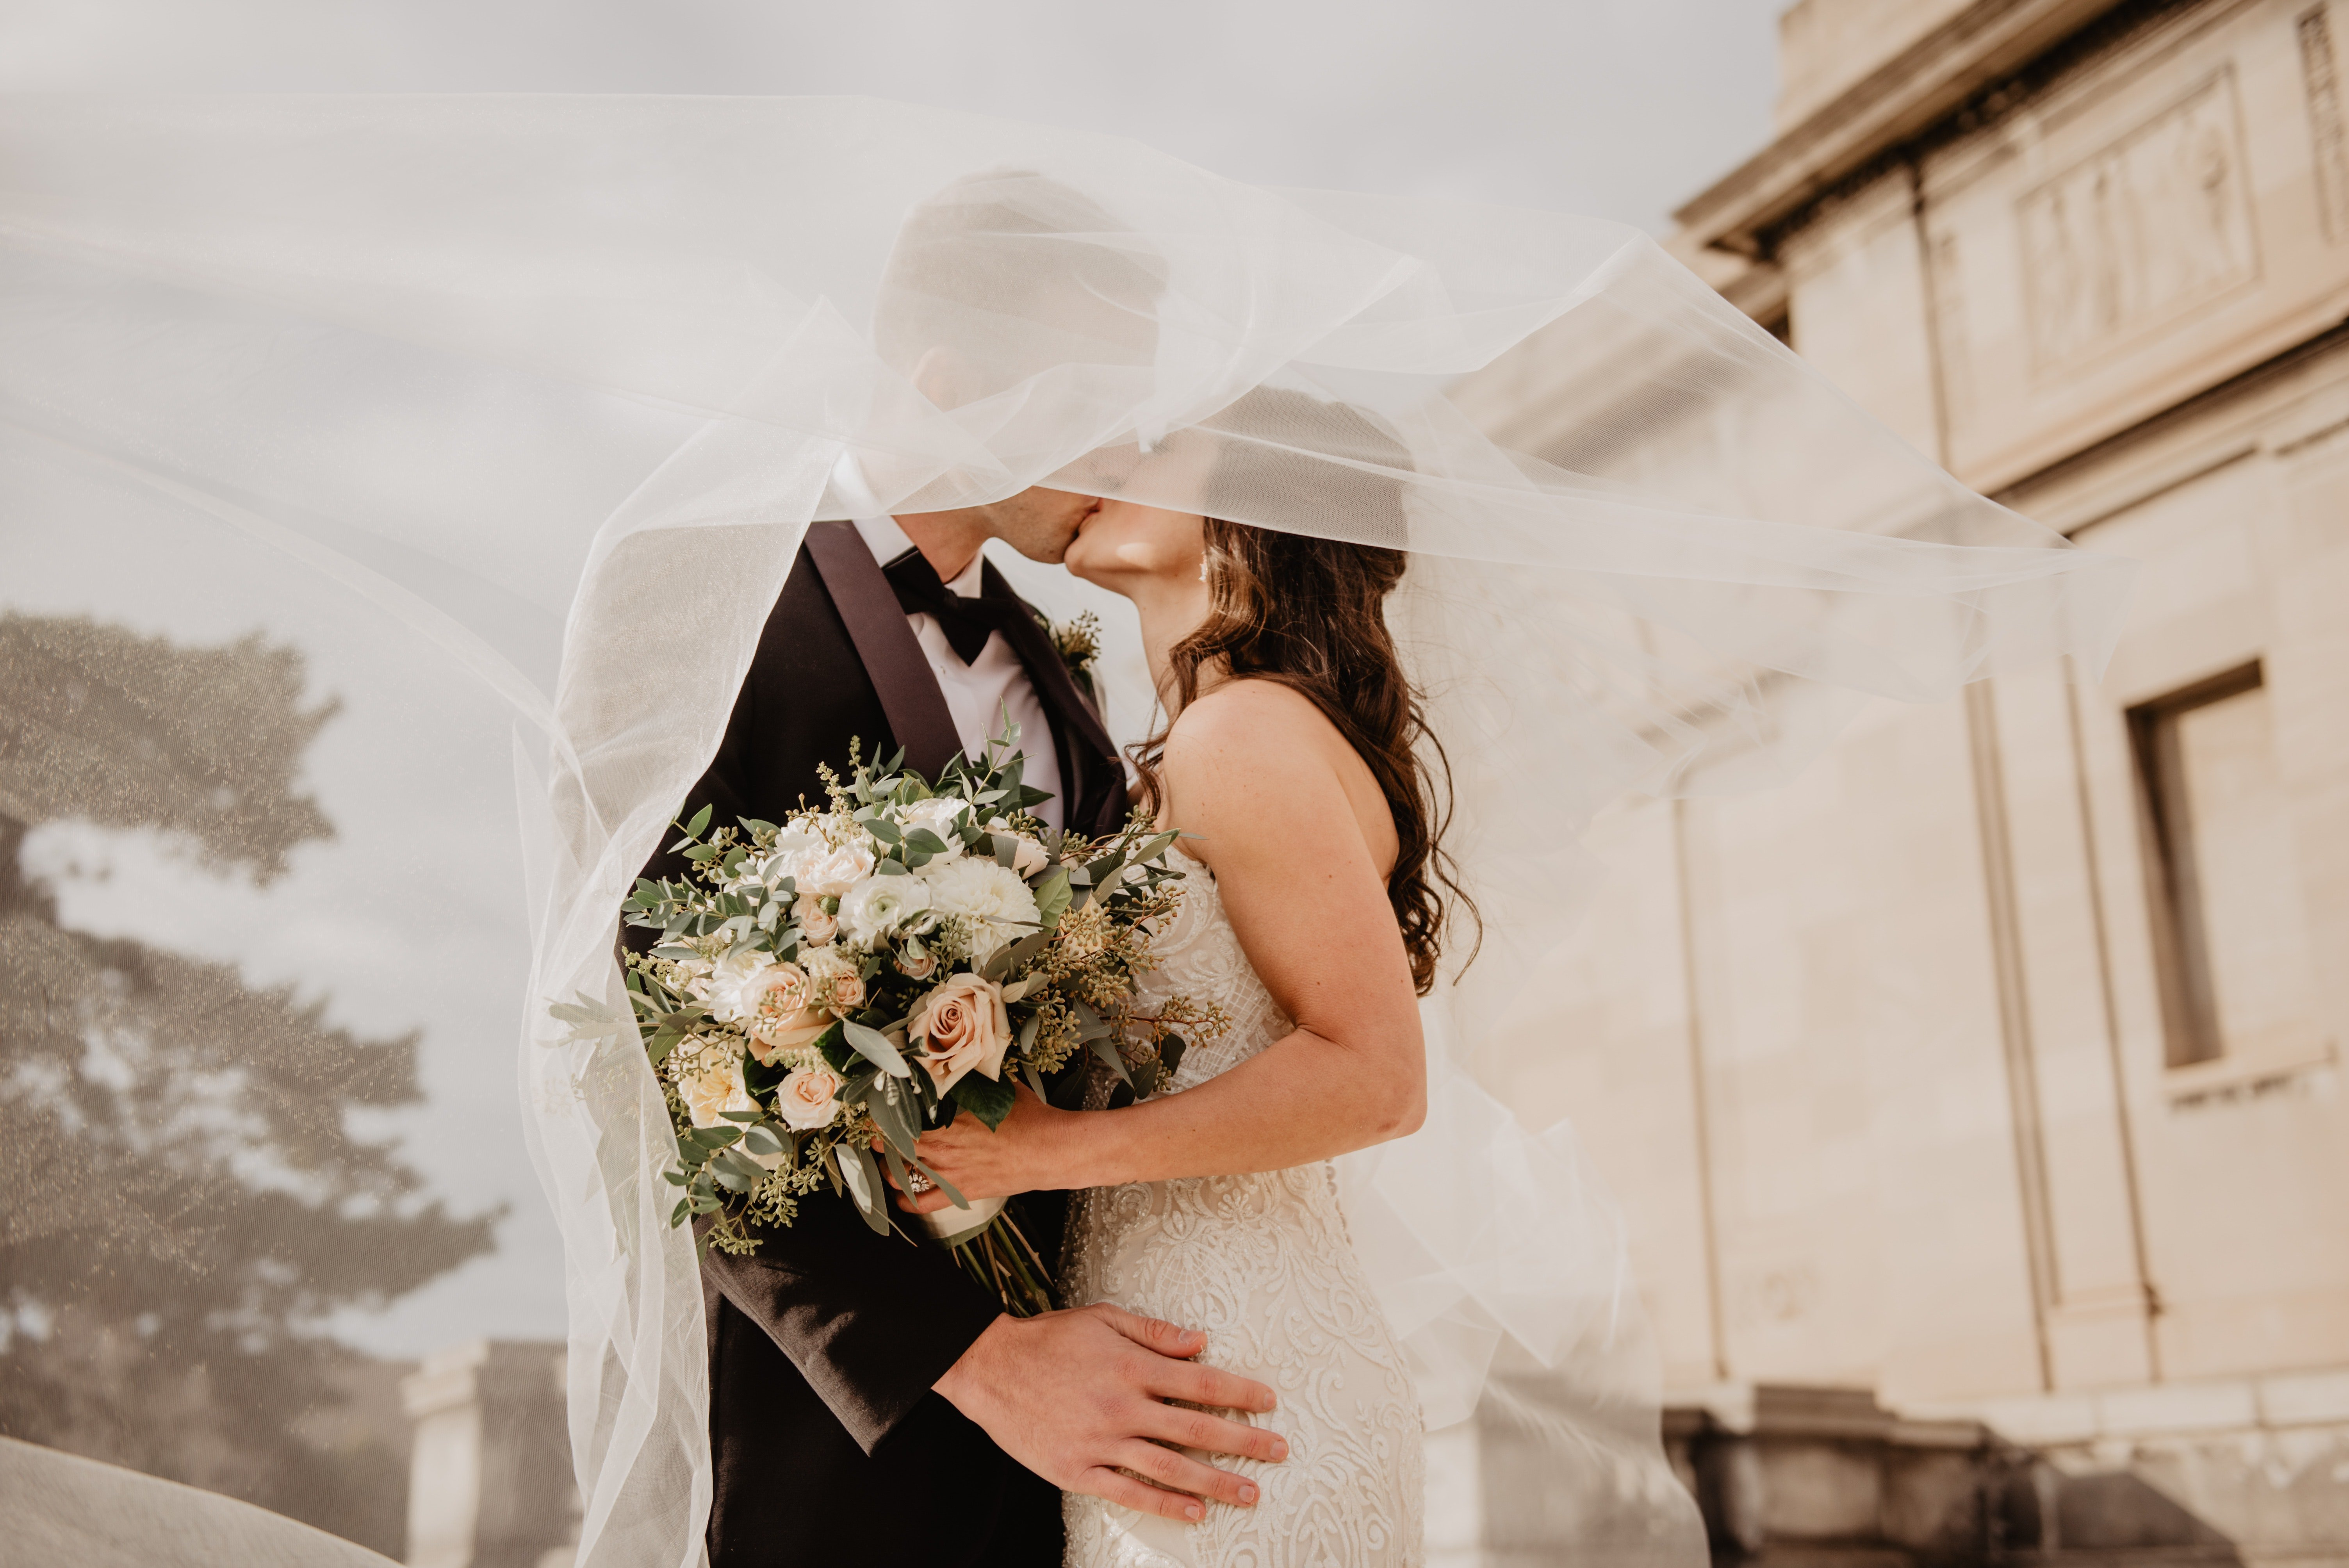 Two months after the proposal came our big day | Source: Pexels